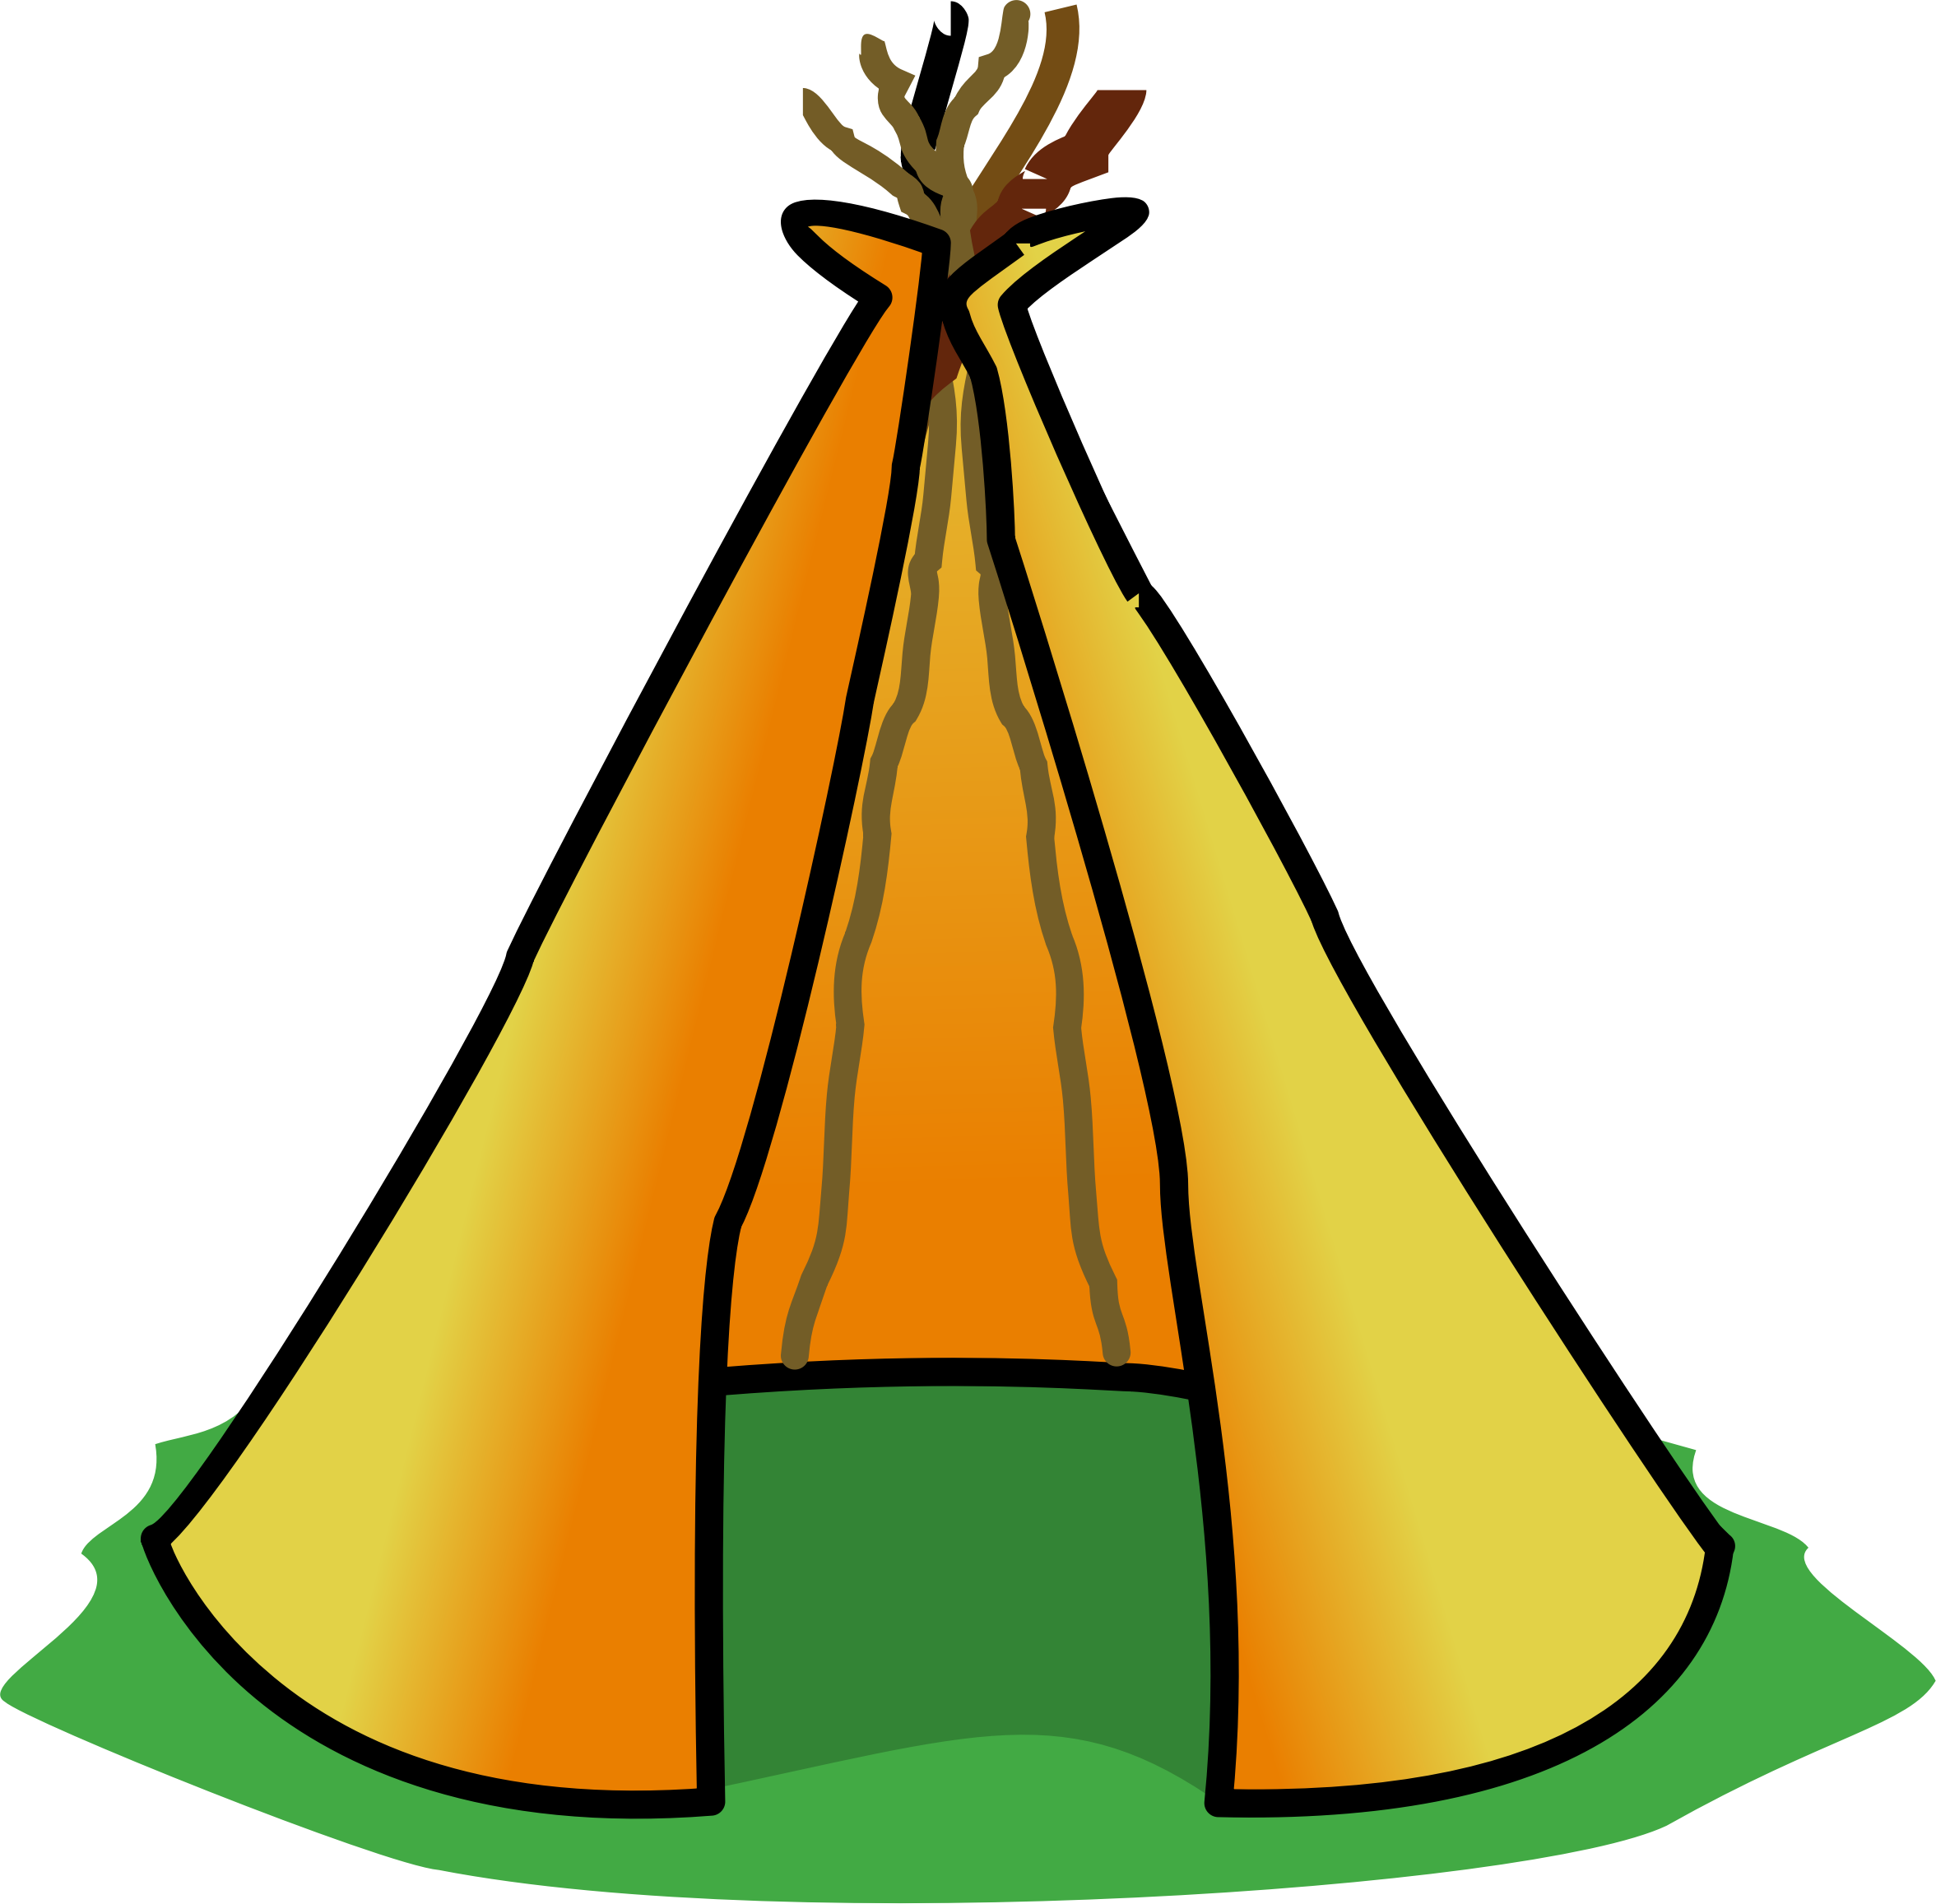 svg black and white library Big image png. Teepee clipart